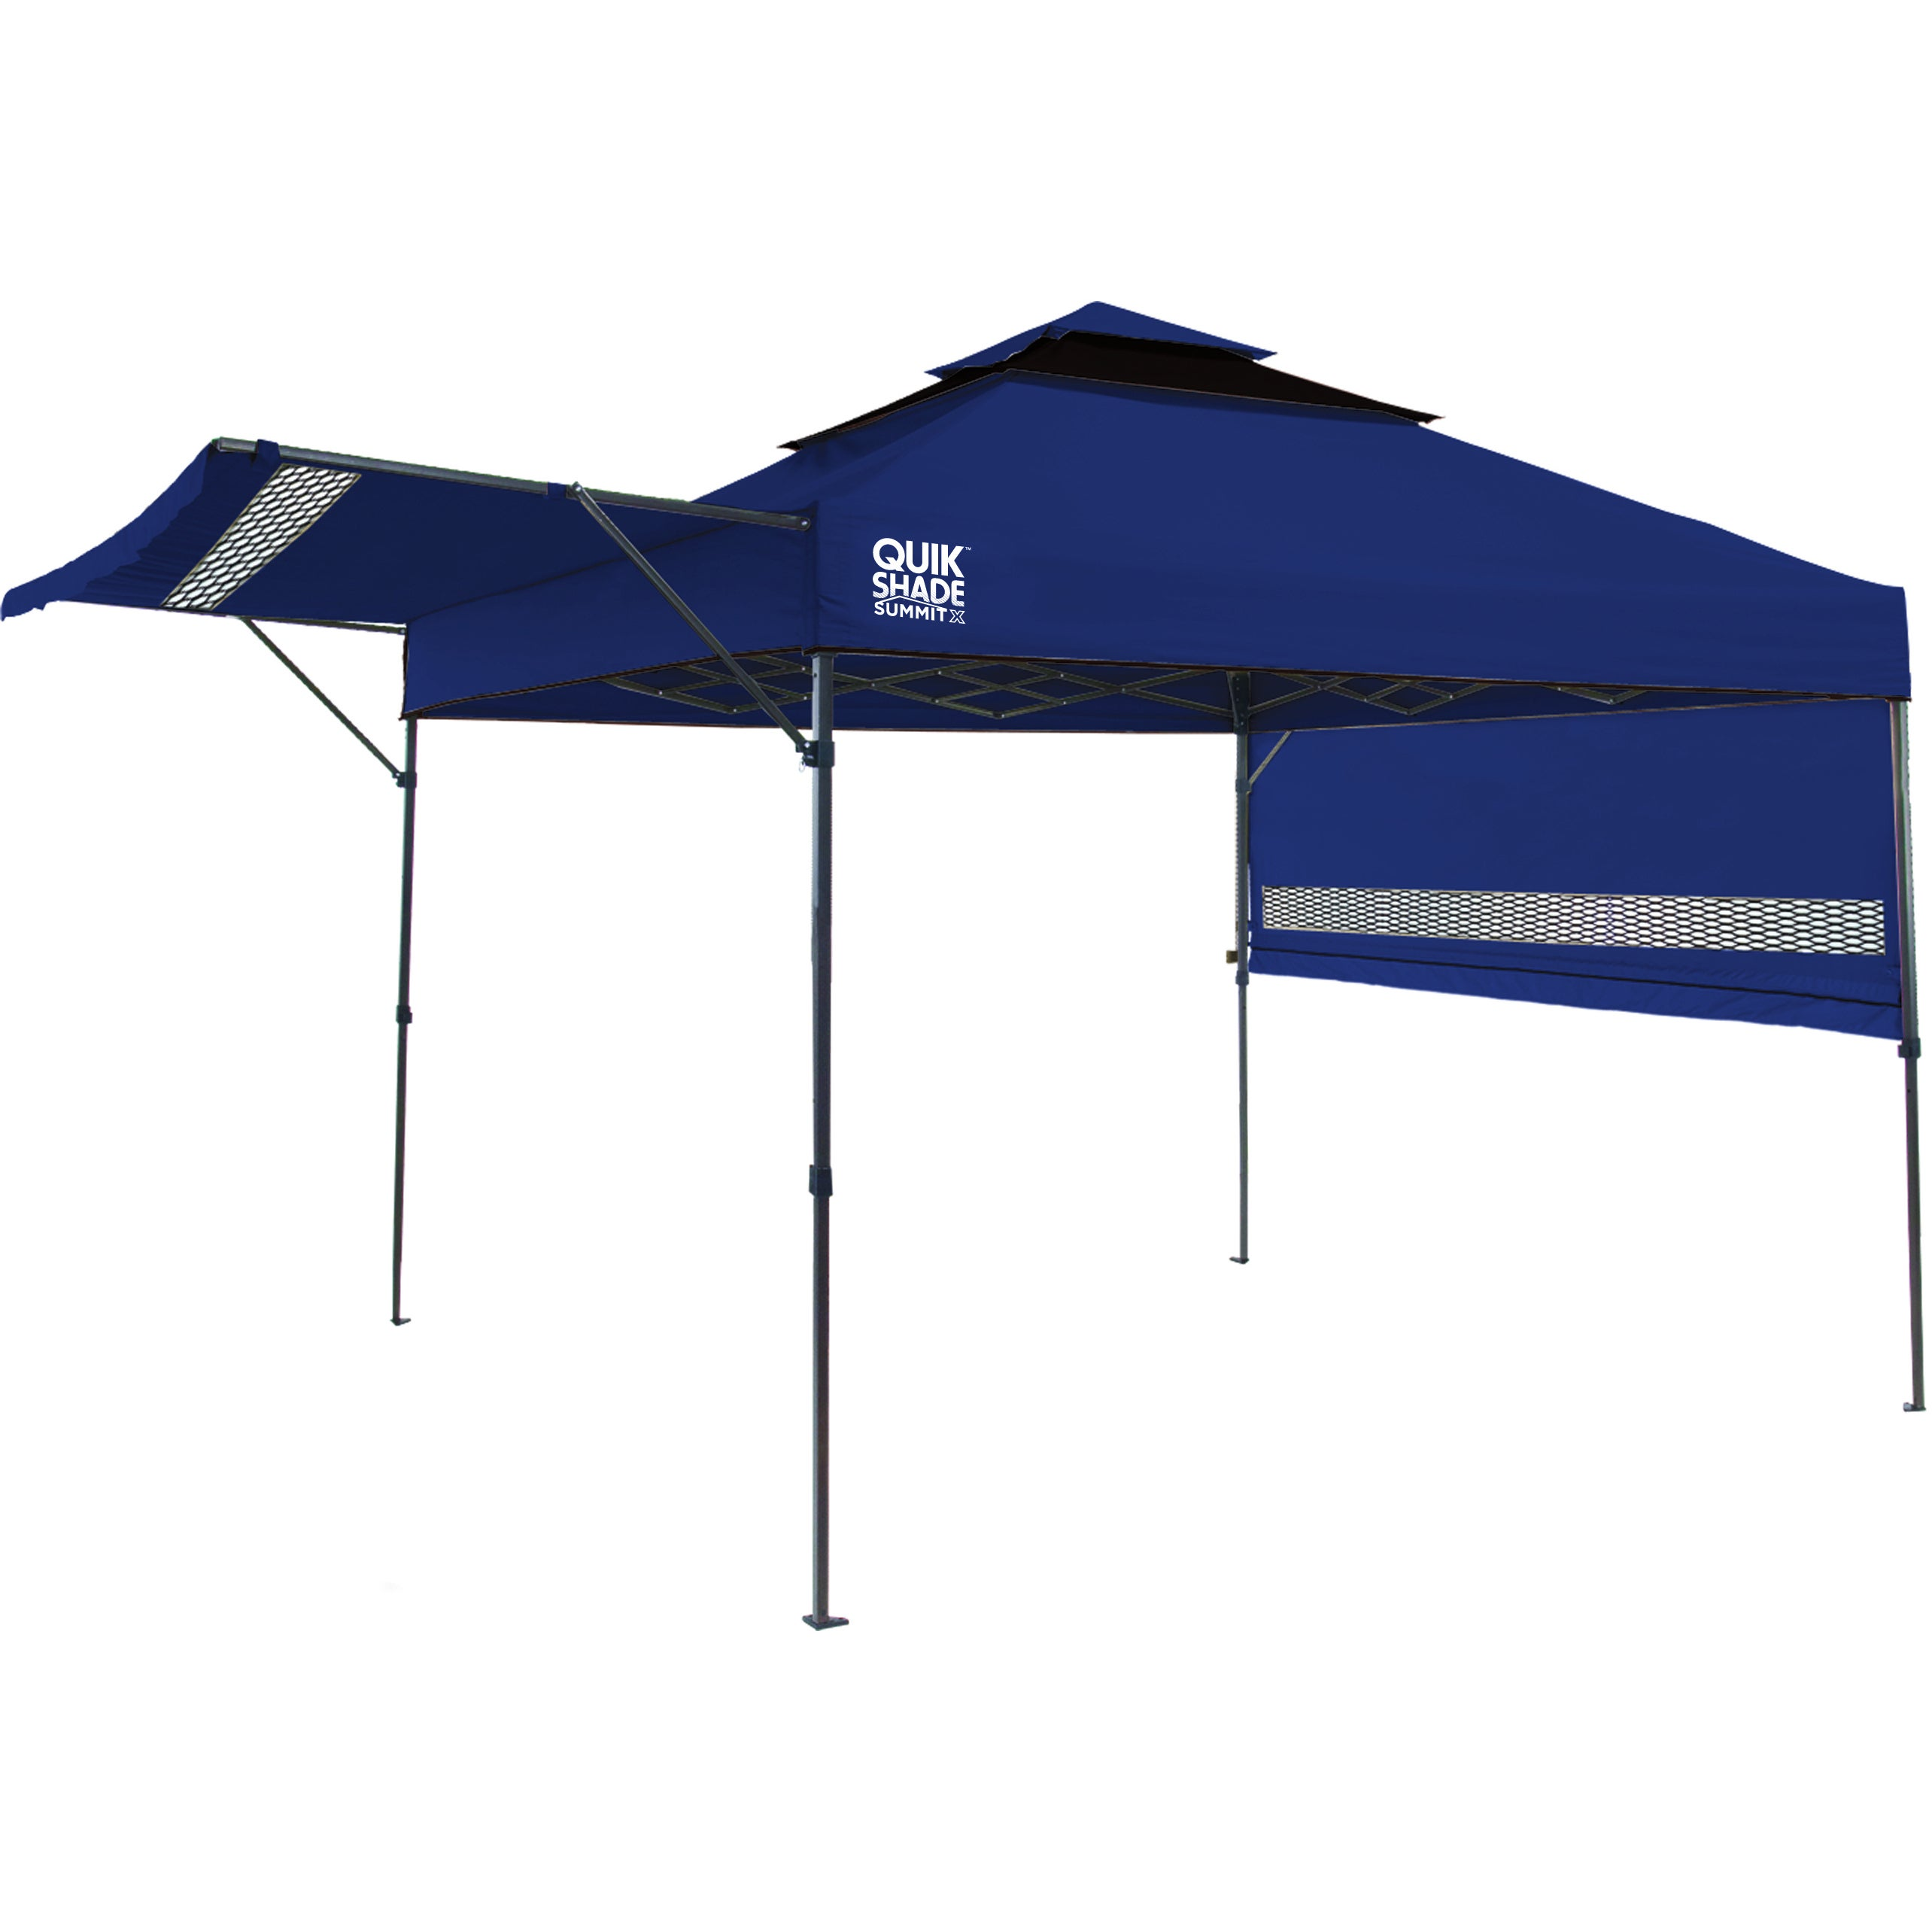 st mip co mo yp com kansas city tent holmes awning